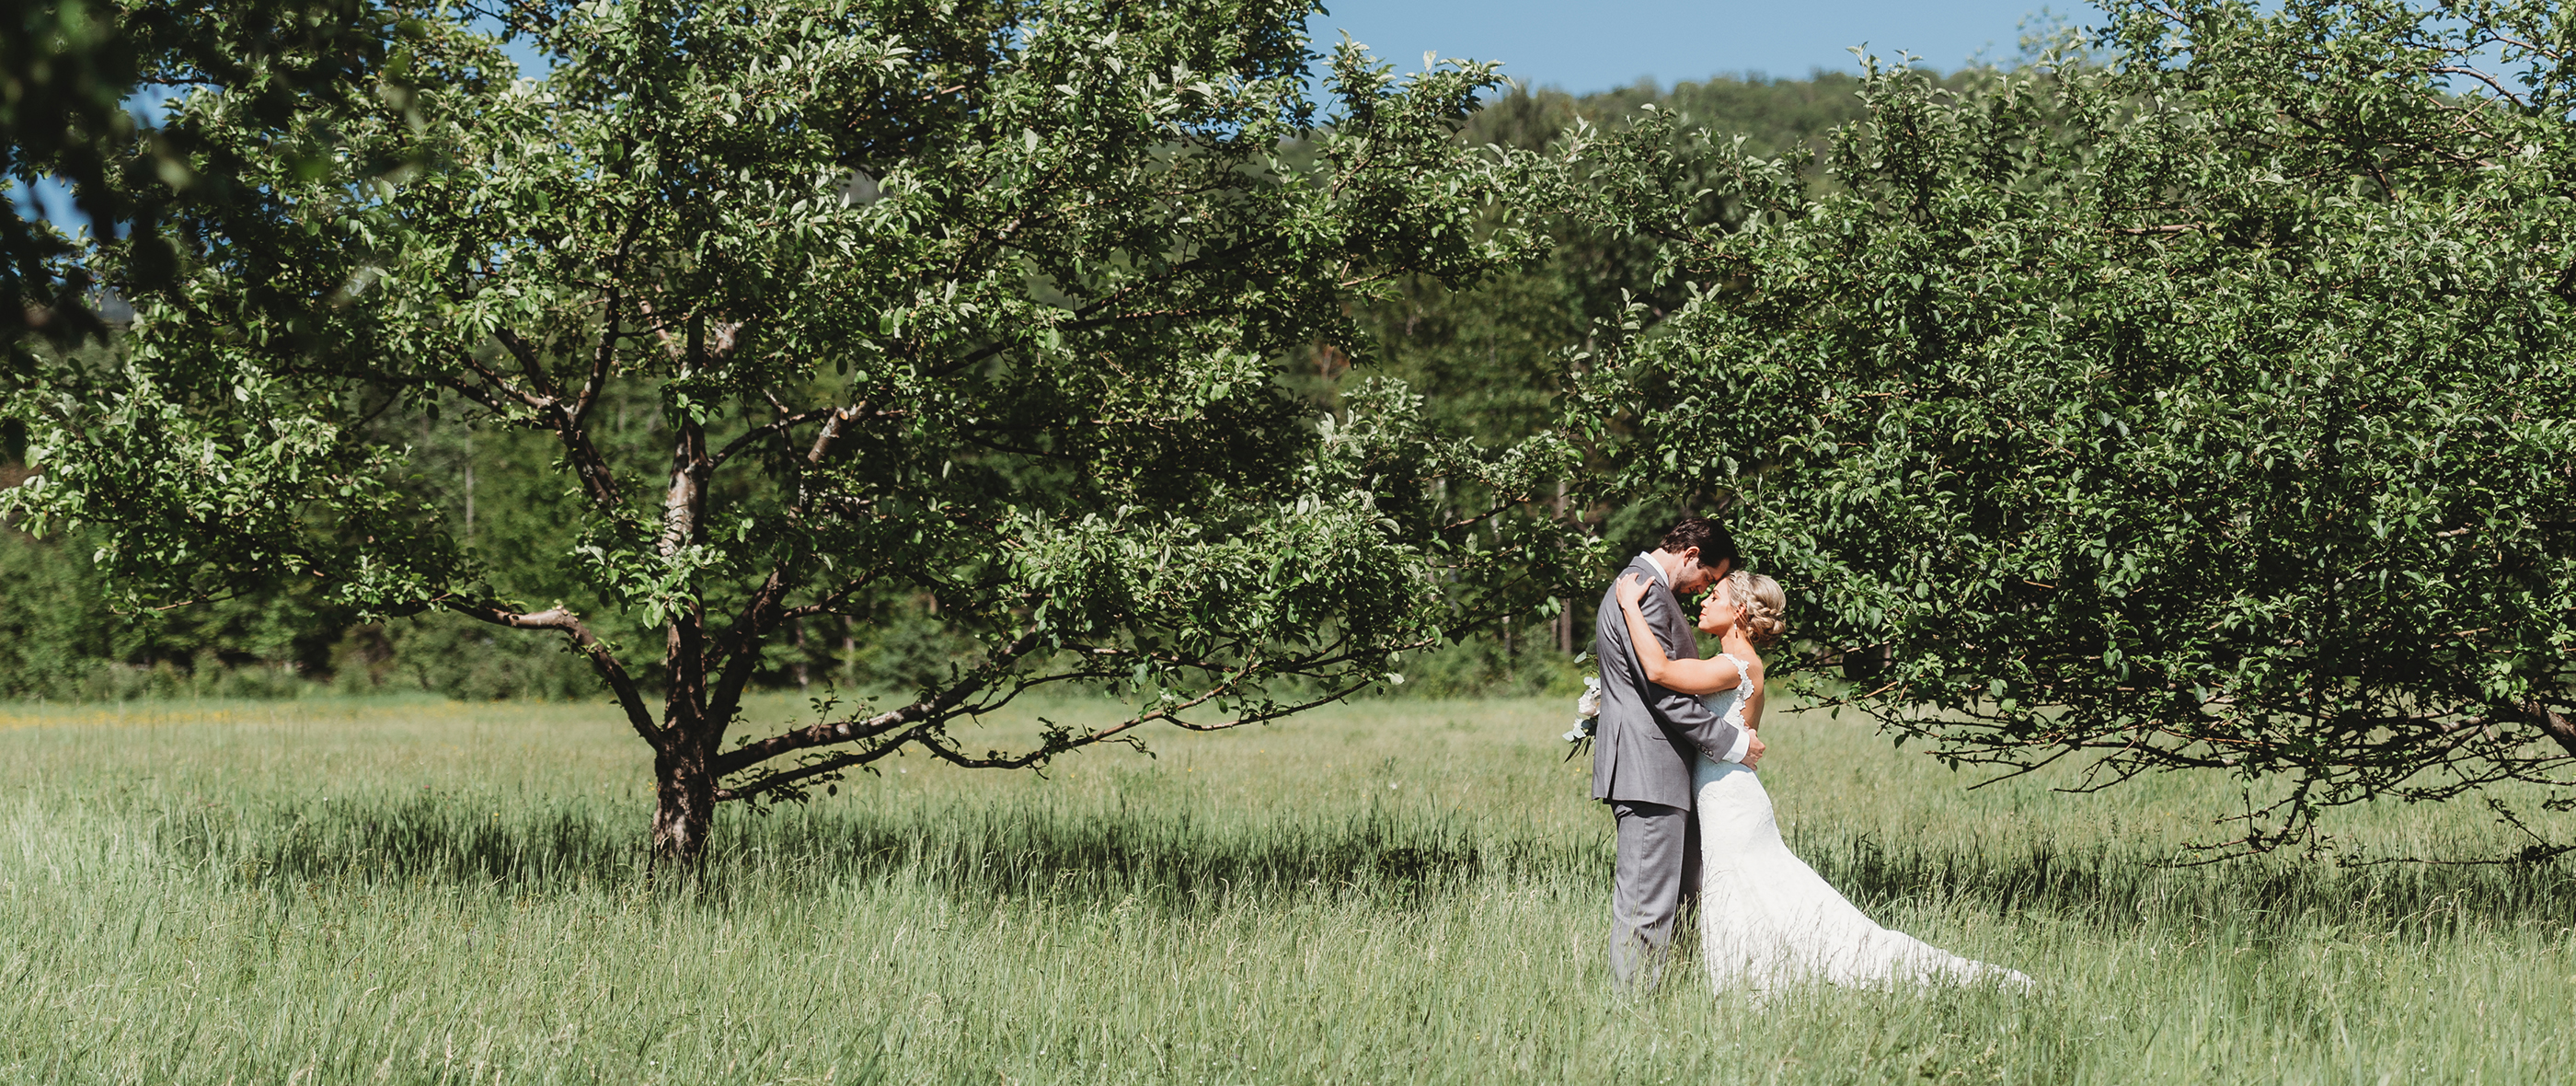 BECCA + STEVE | BELLEVUE BARN WEDDING